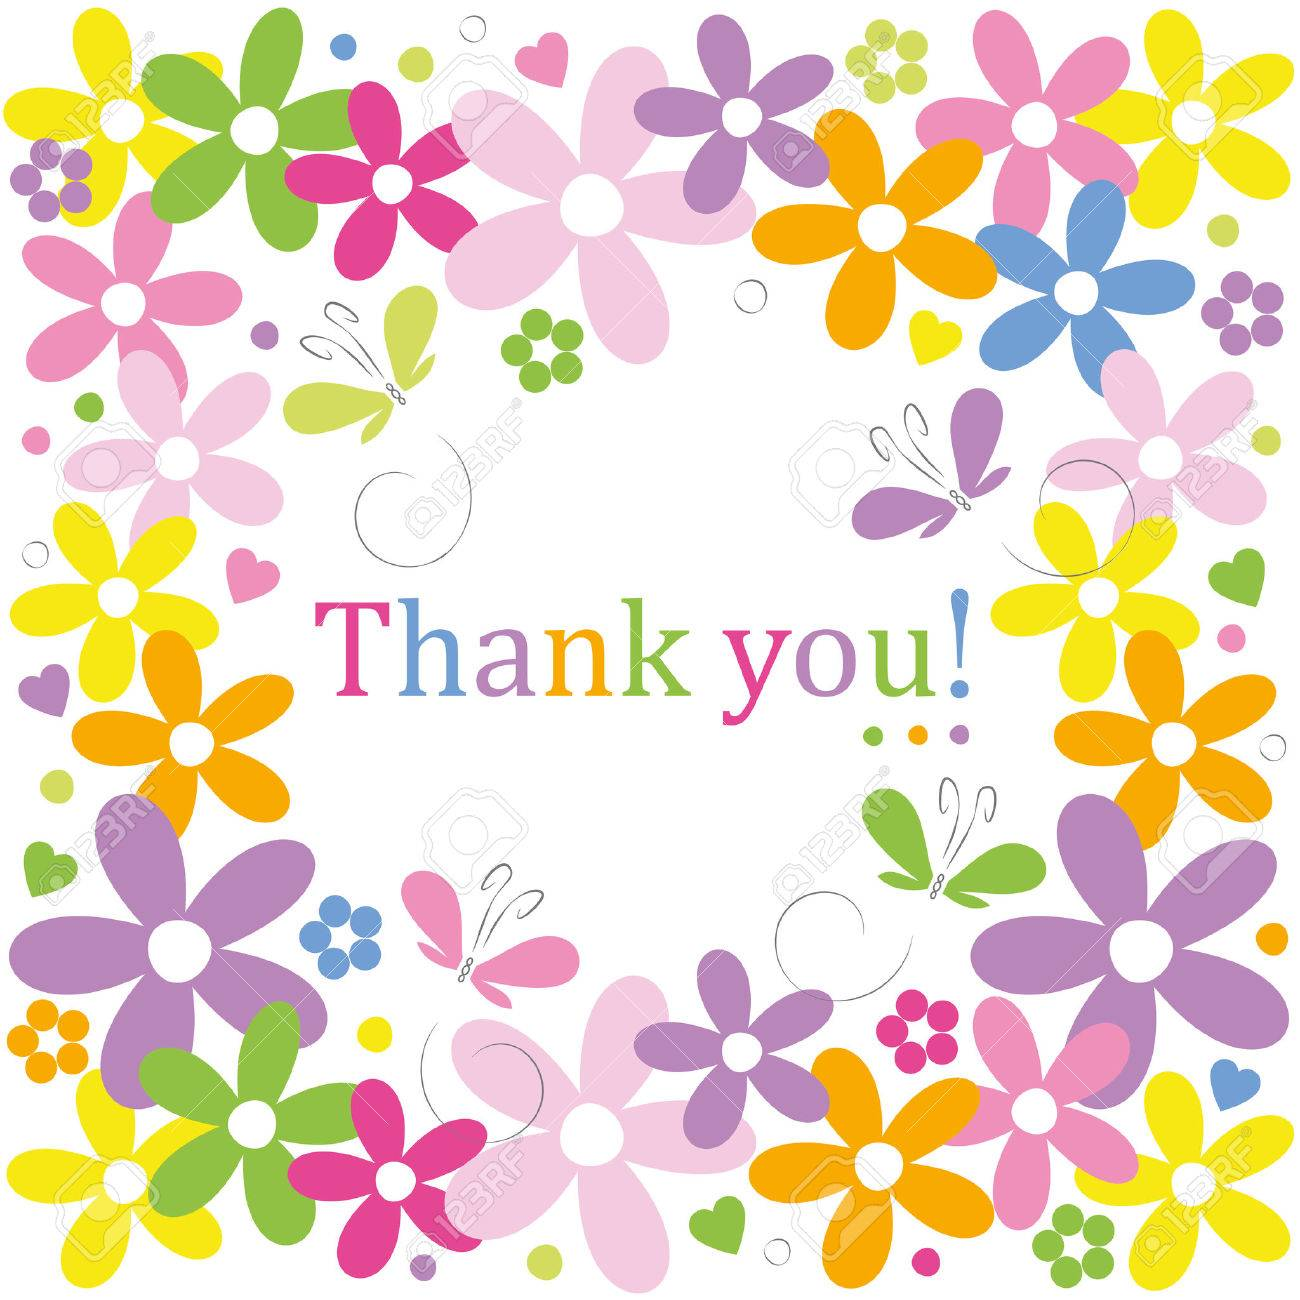 Hearts Flowers And Butterflies Border Thank You Card Royalty Free.